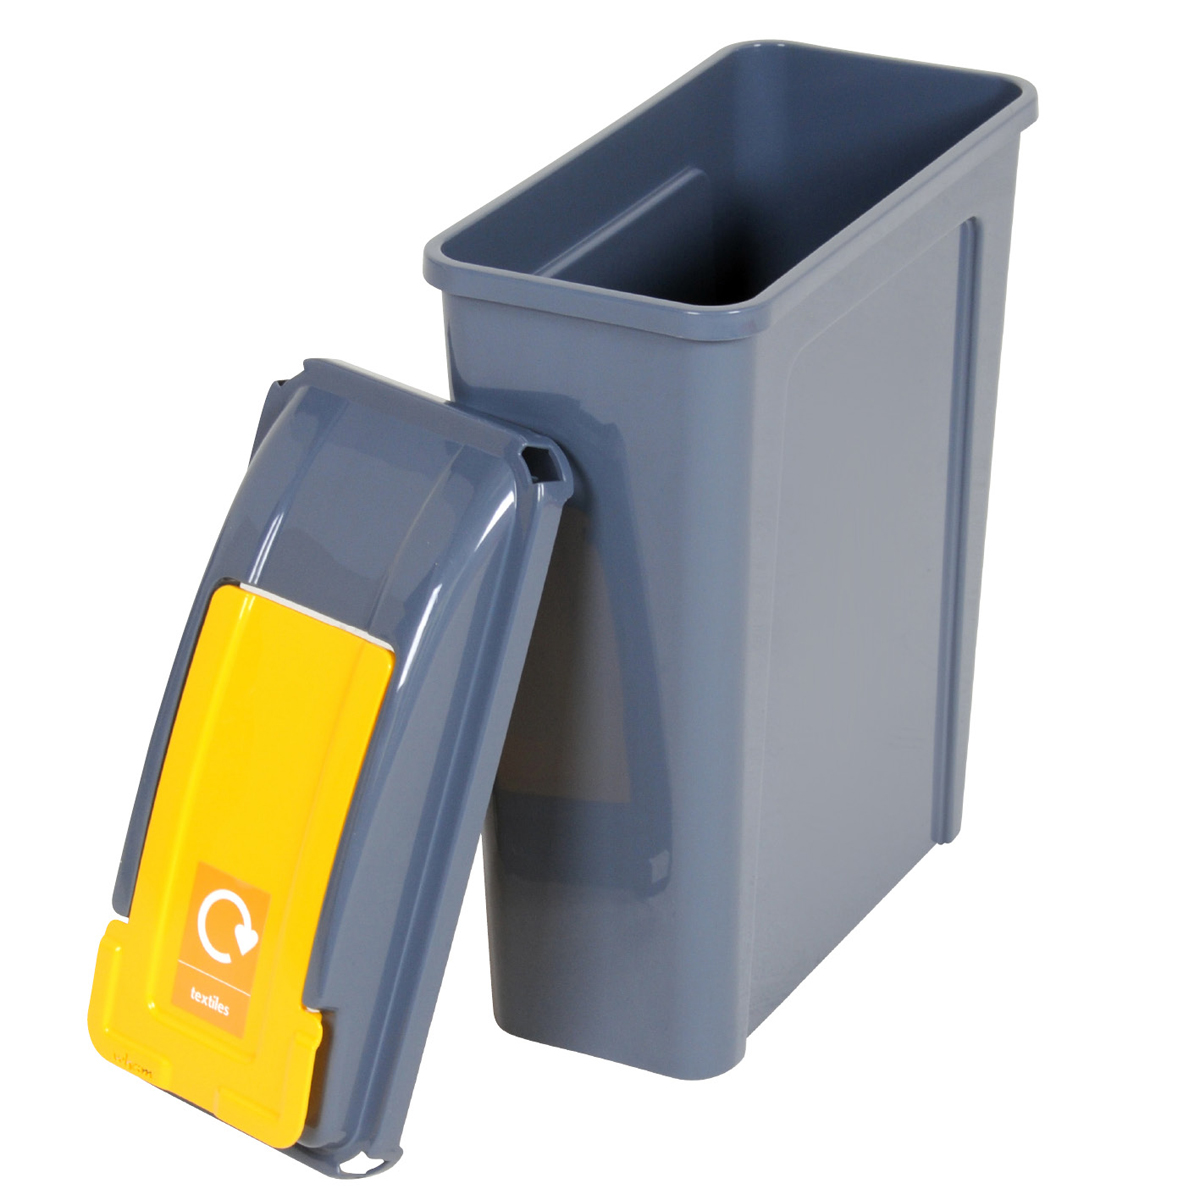 25 L Compartment Recycling Recycle Bin Yellow Flip Lid | eBay